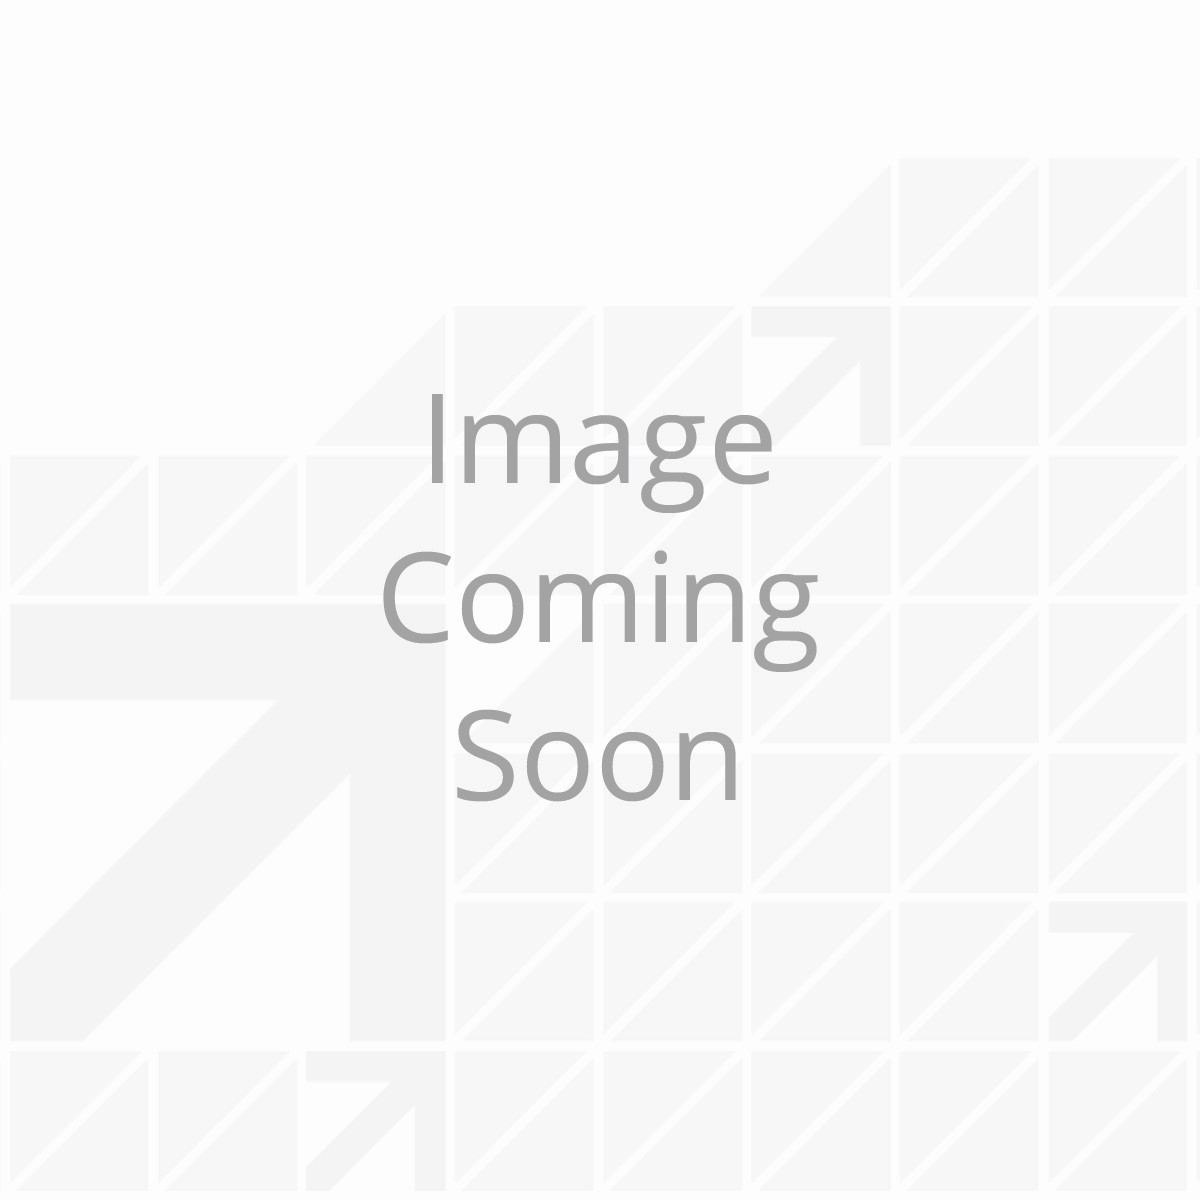 Ground Control® 3.0 Aftermarket Kit - 4-Point with Wireless Remote